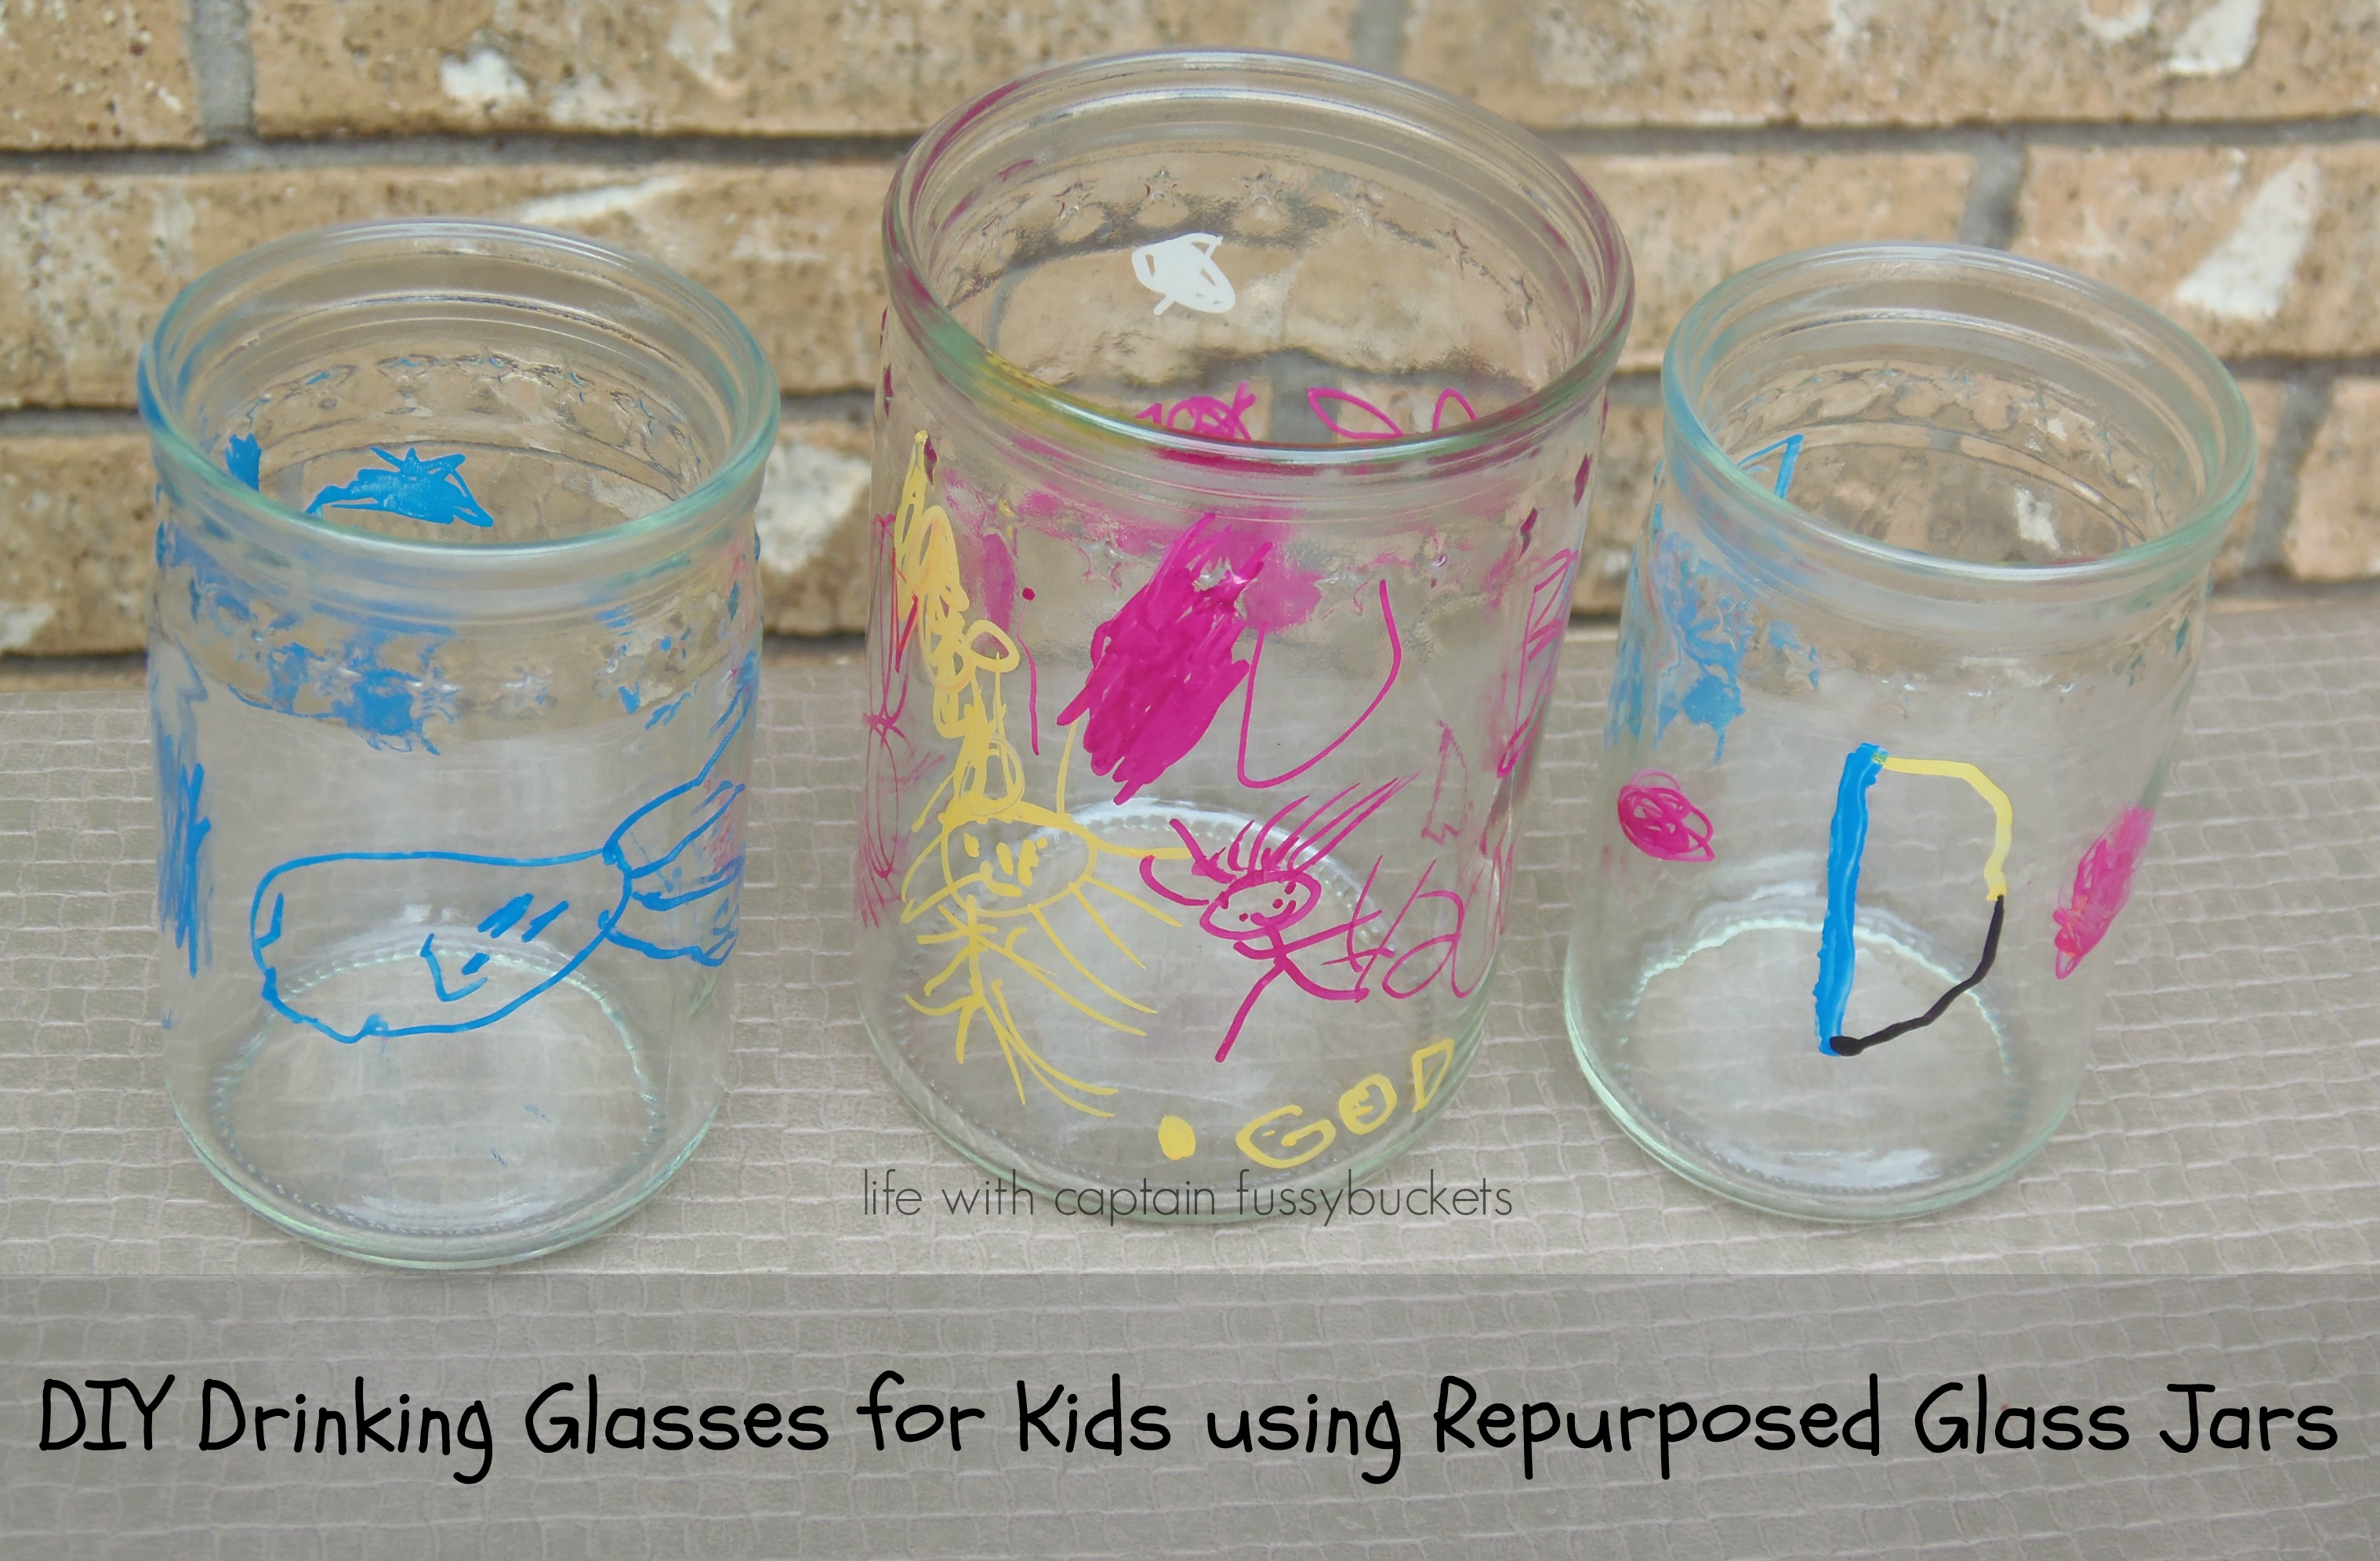 Crafts for kids life with captain fussybuckets for Crafts using glass jars